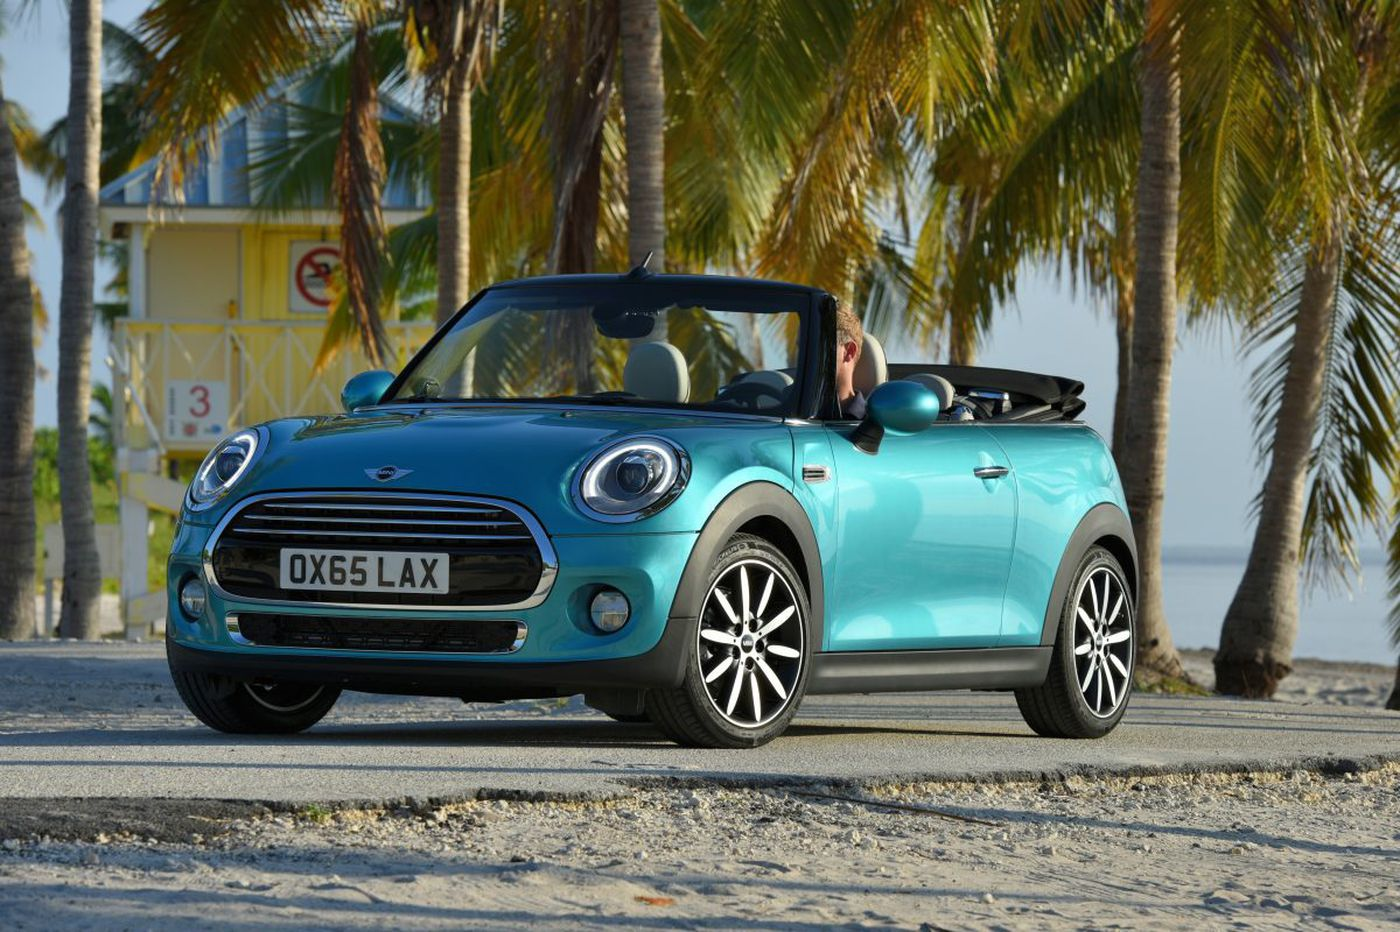 Considering a convertible? Now's the time to buy